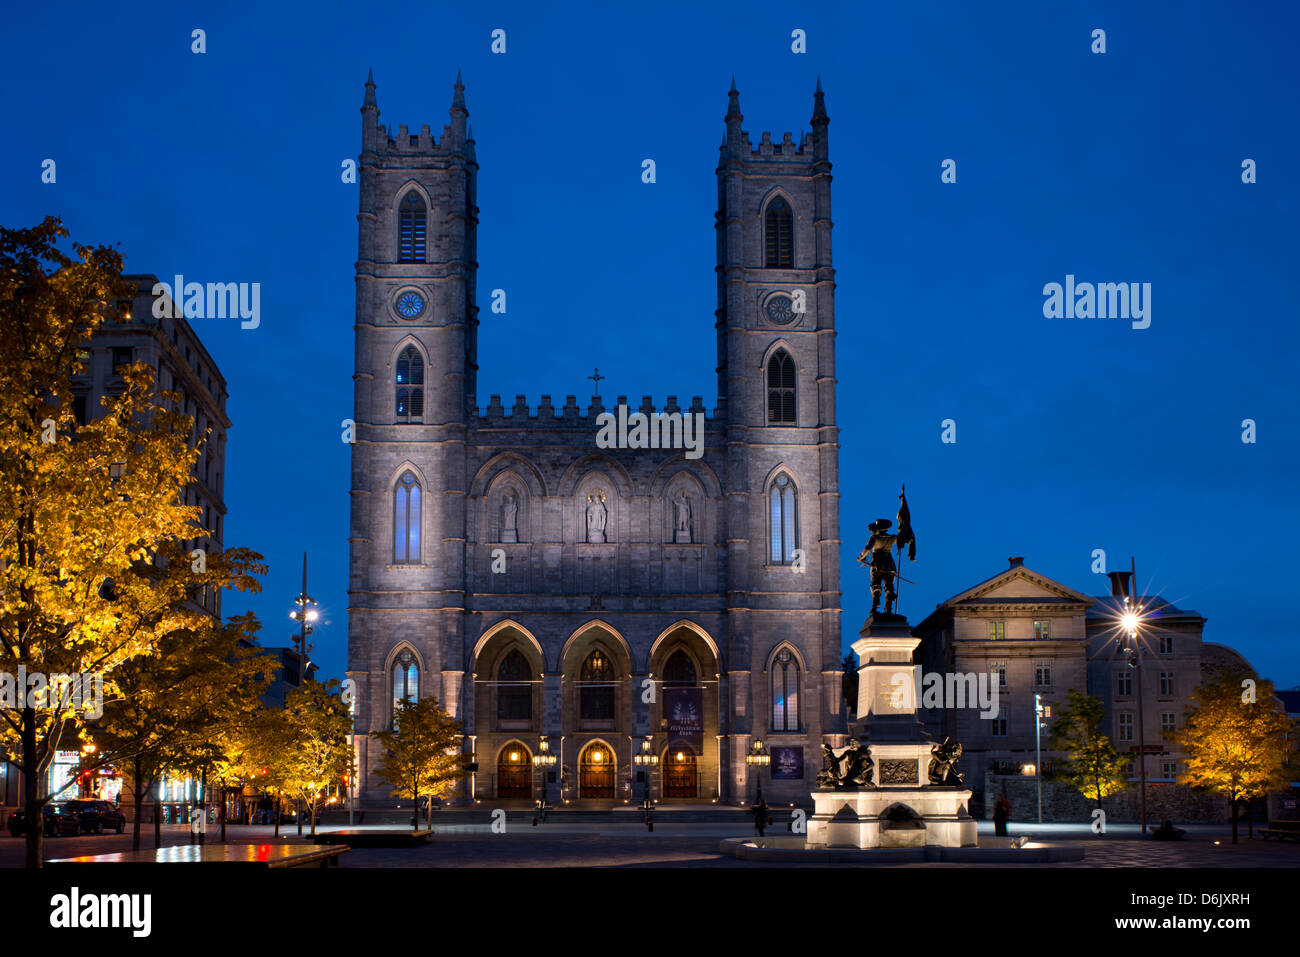 The Notre Dame Cathedral at dusk in the Place d'Arms, Montreal, Quebec Province, Canada, North America - Stock Image